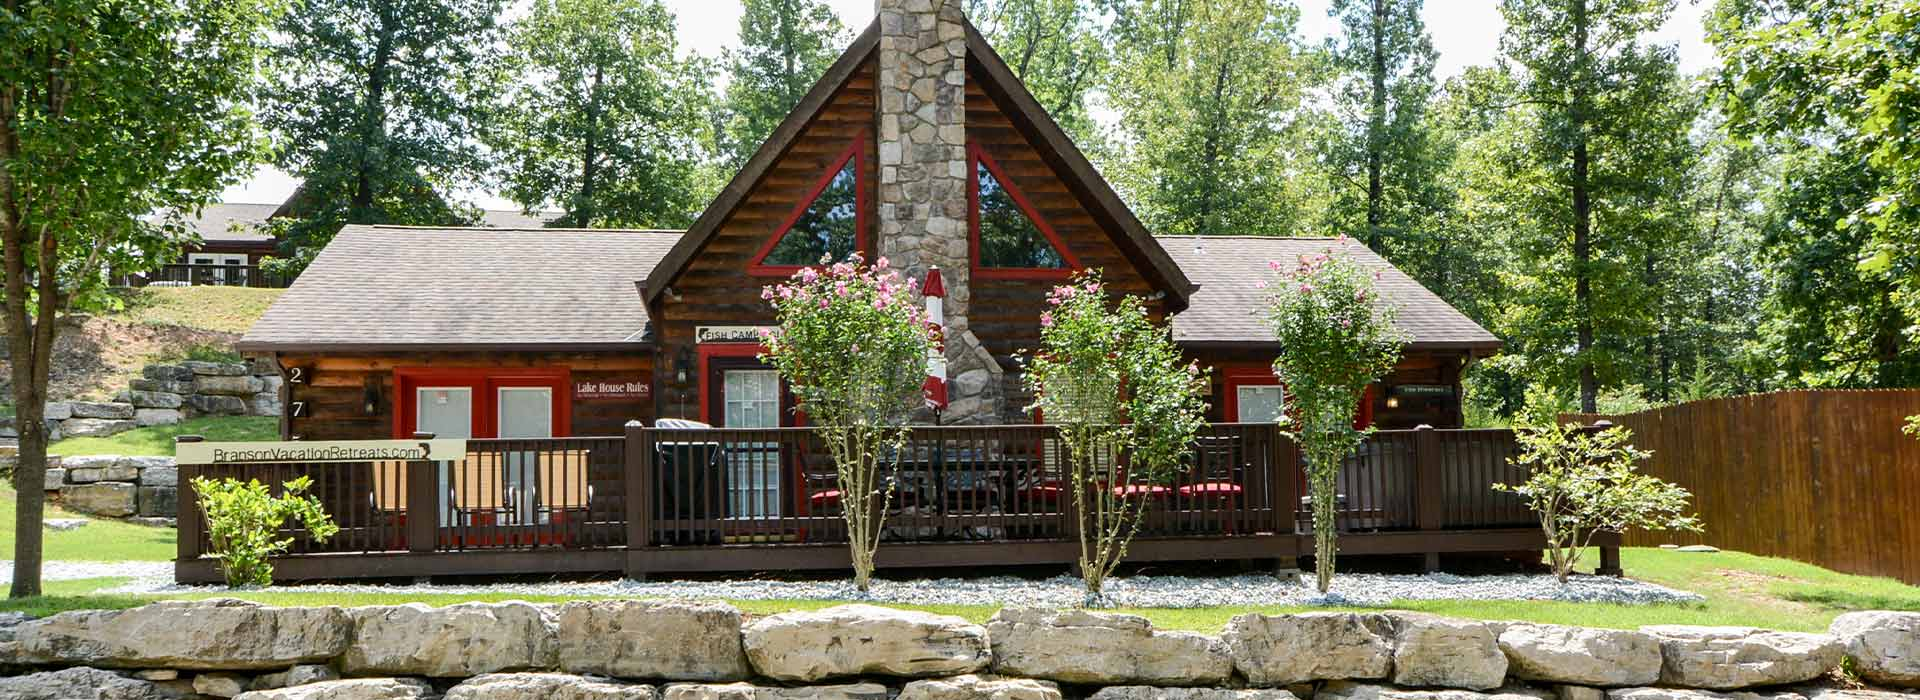 Branson Log Cabin Rentals | Vacation Cabins In Branson Missouri